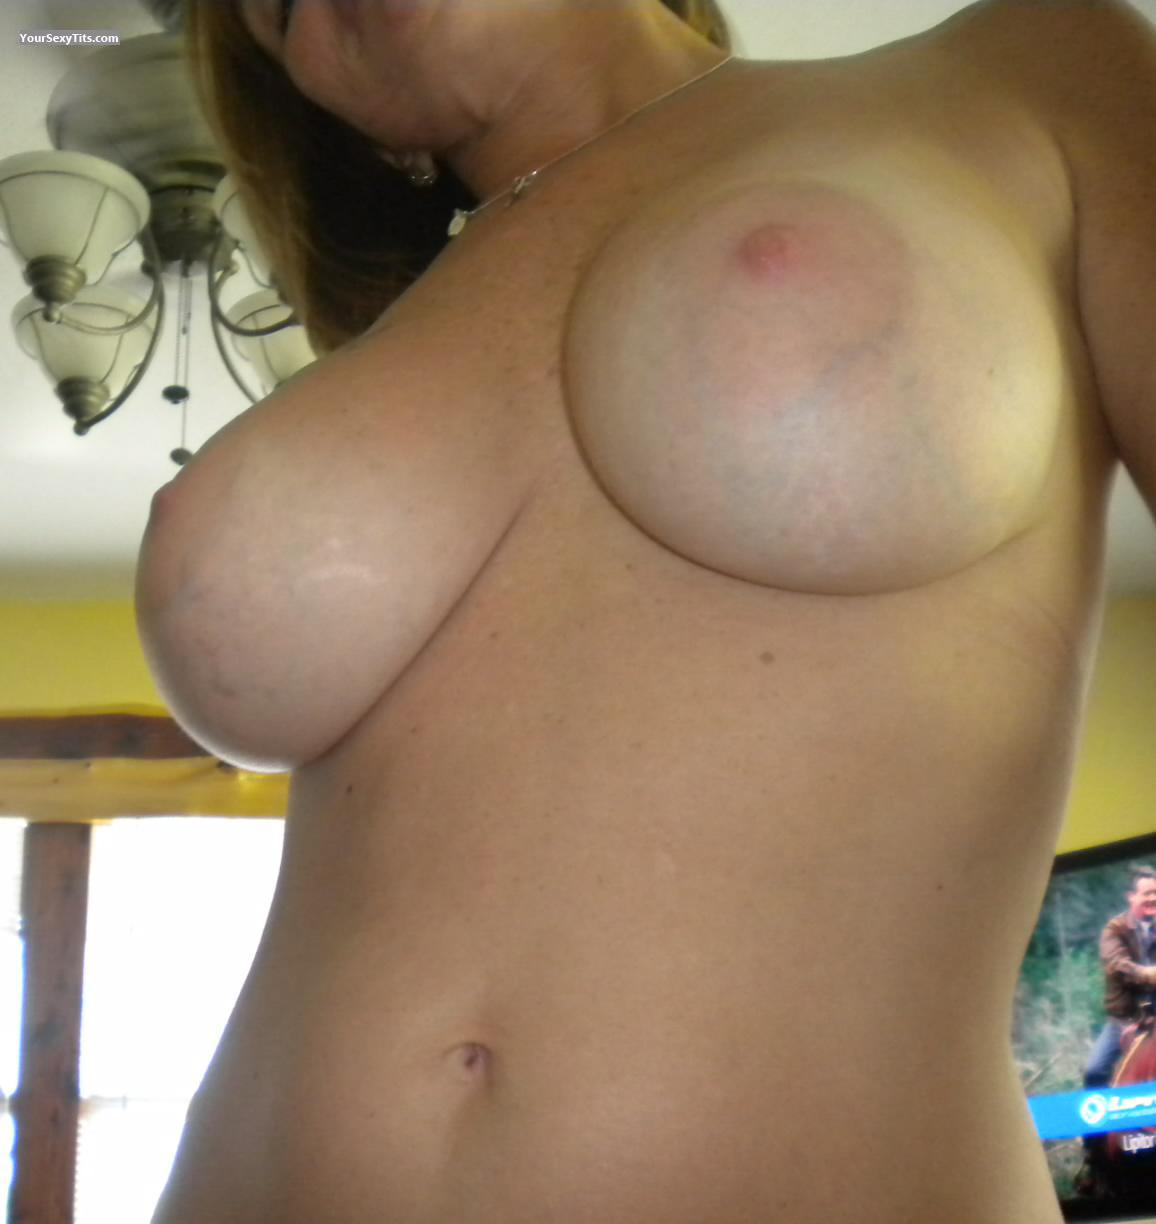 Tit Flash: Big Tits - Charlietex6274 On Y from United States